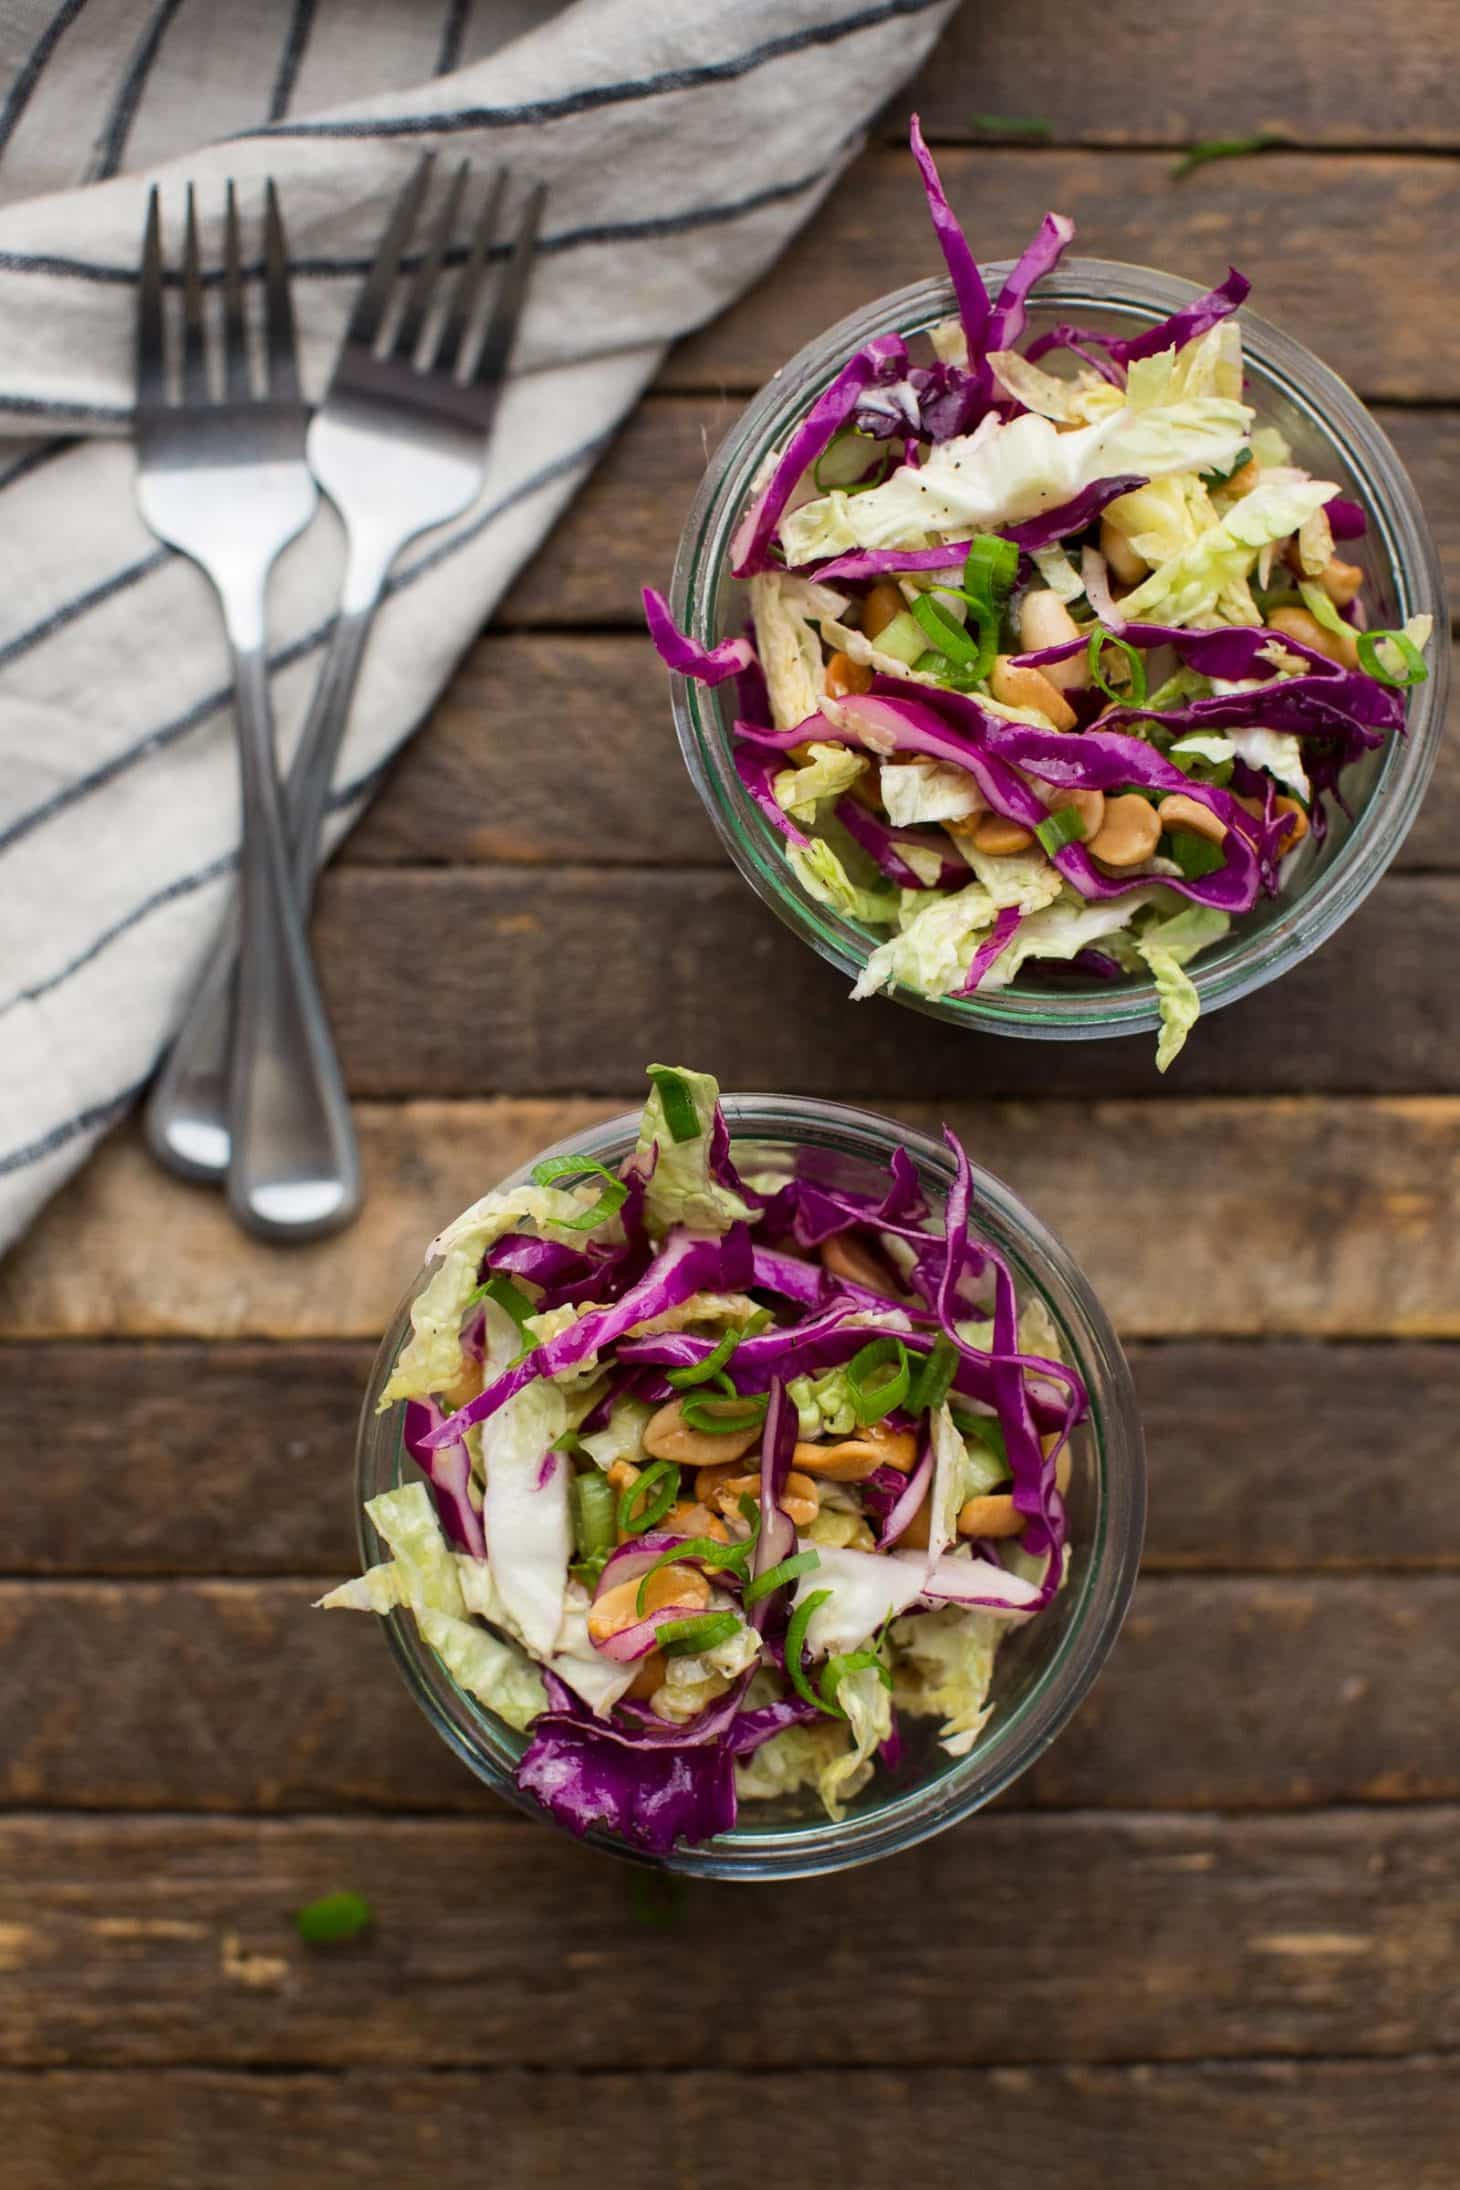 Quick Cabbage Salad with Peanuts